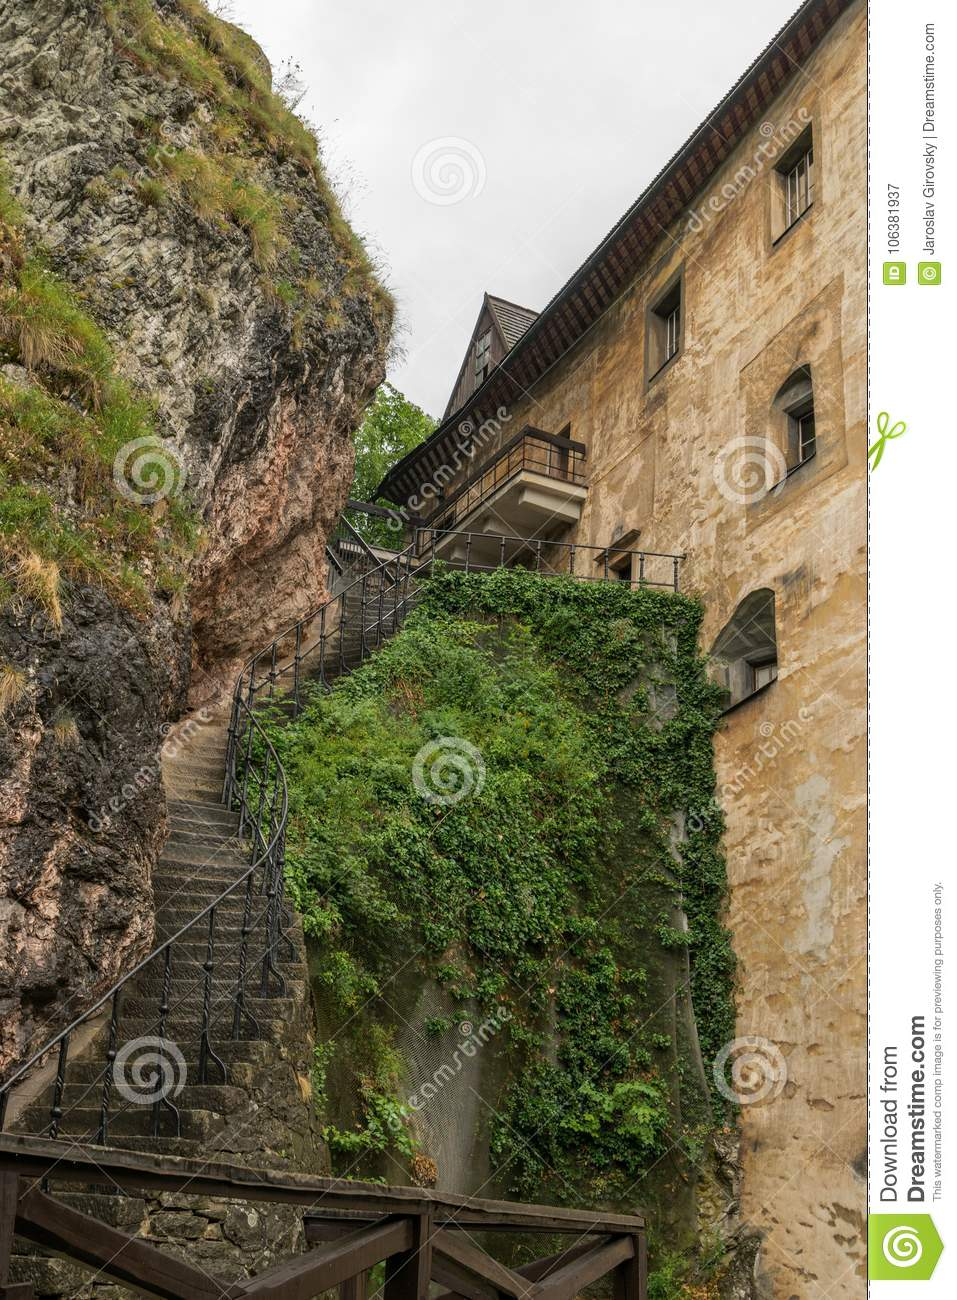 download stairs to higher parts of castle stock image image of courtyard tourism